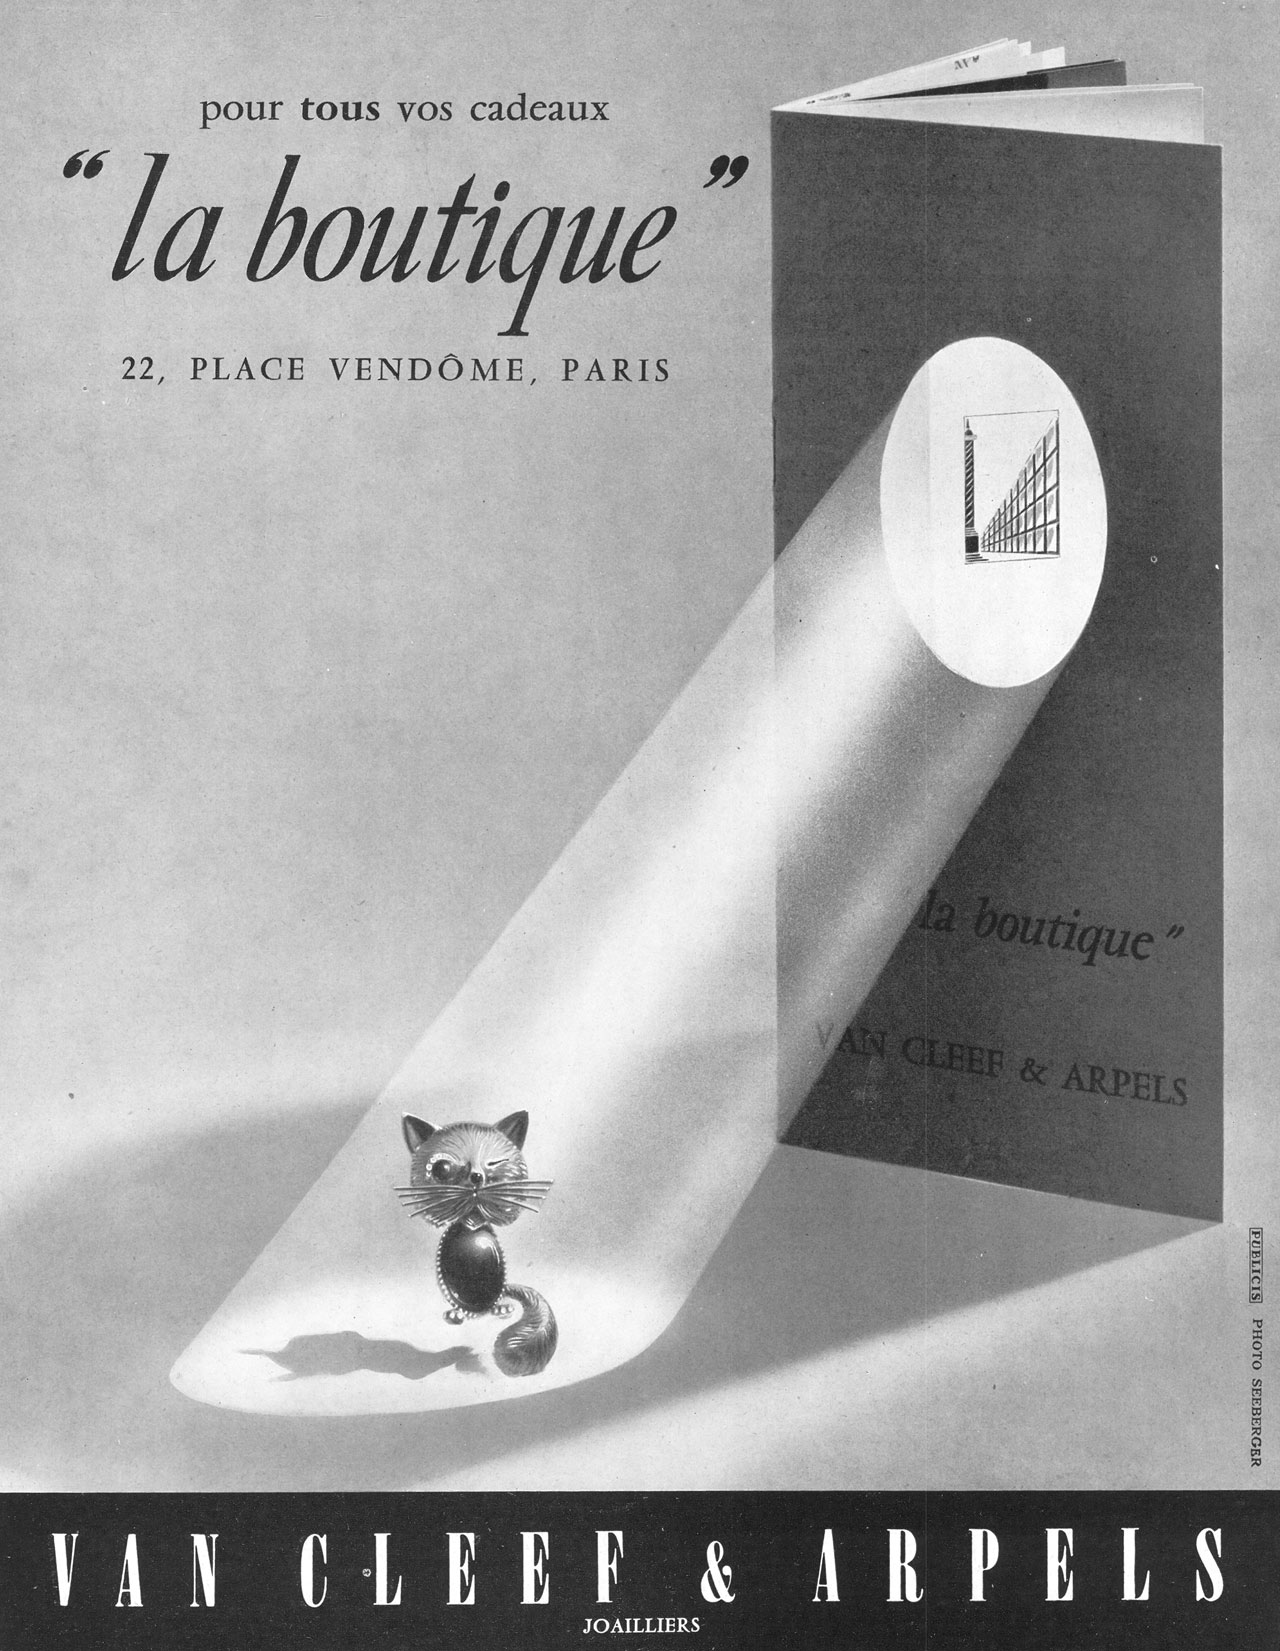 La Boutique advert, featuring the Chat Malicieux, June 1955. Photo©Seeberger.